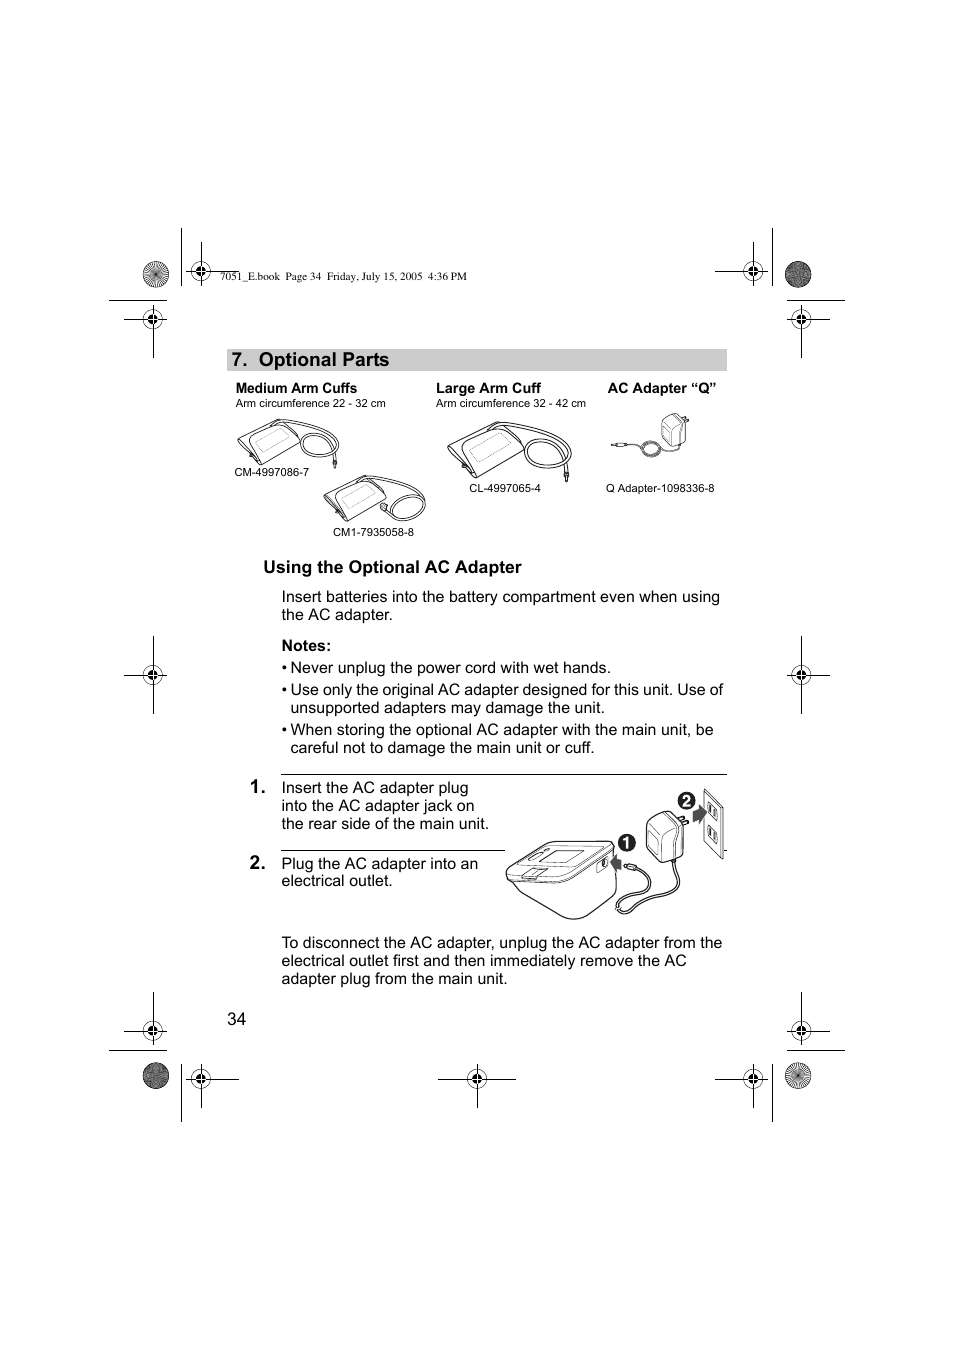 Optional parts | Omron Healthcare M3 User Manual | Page 34 / 38